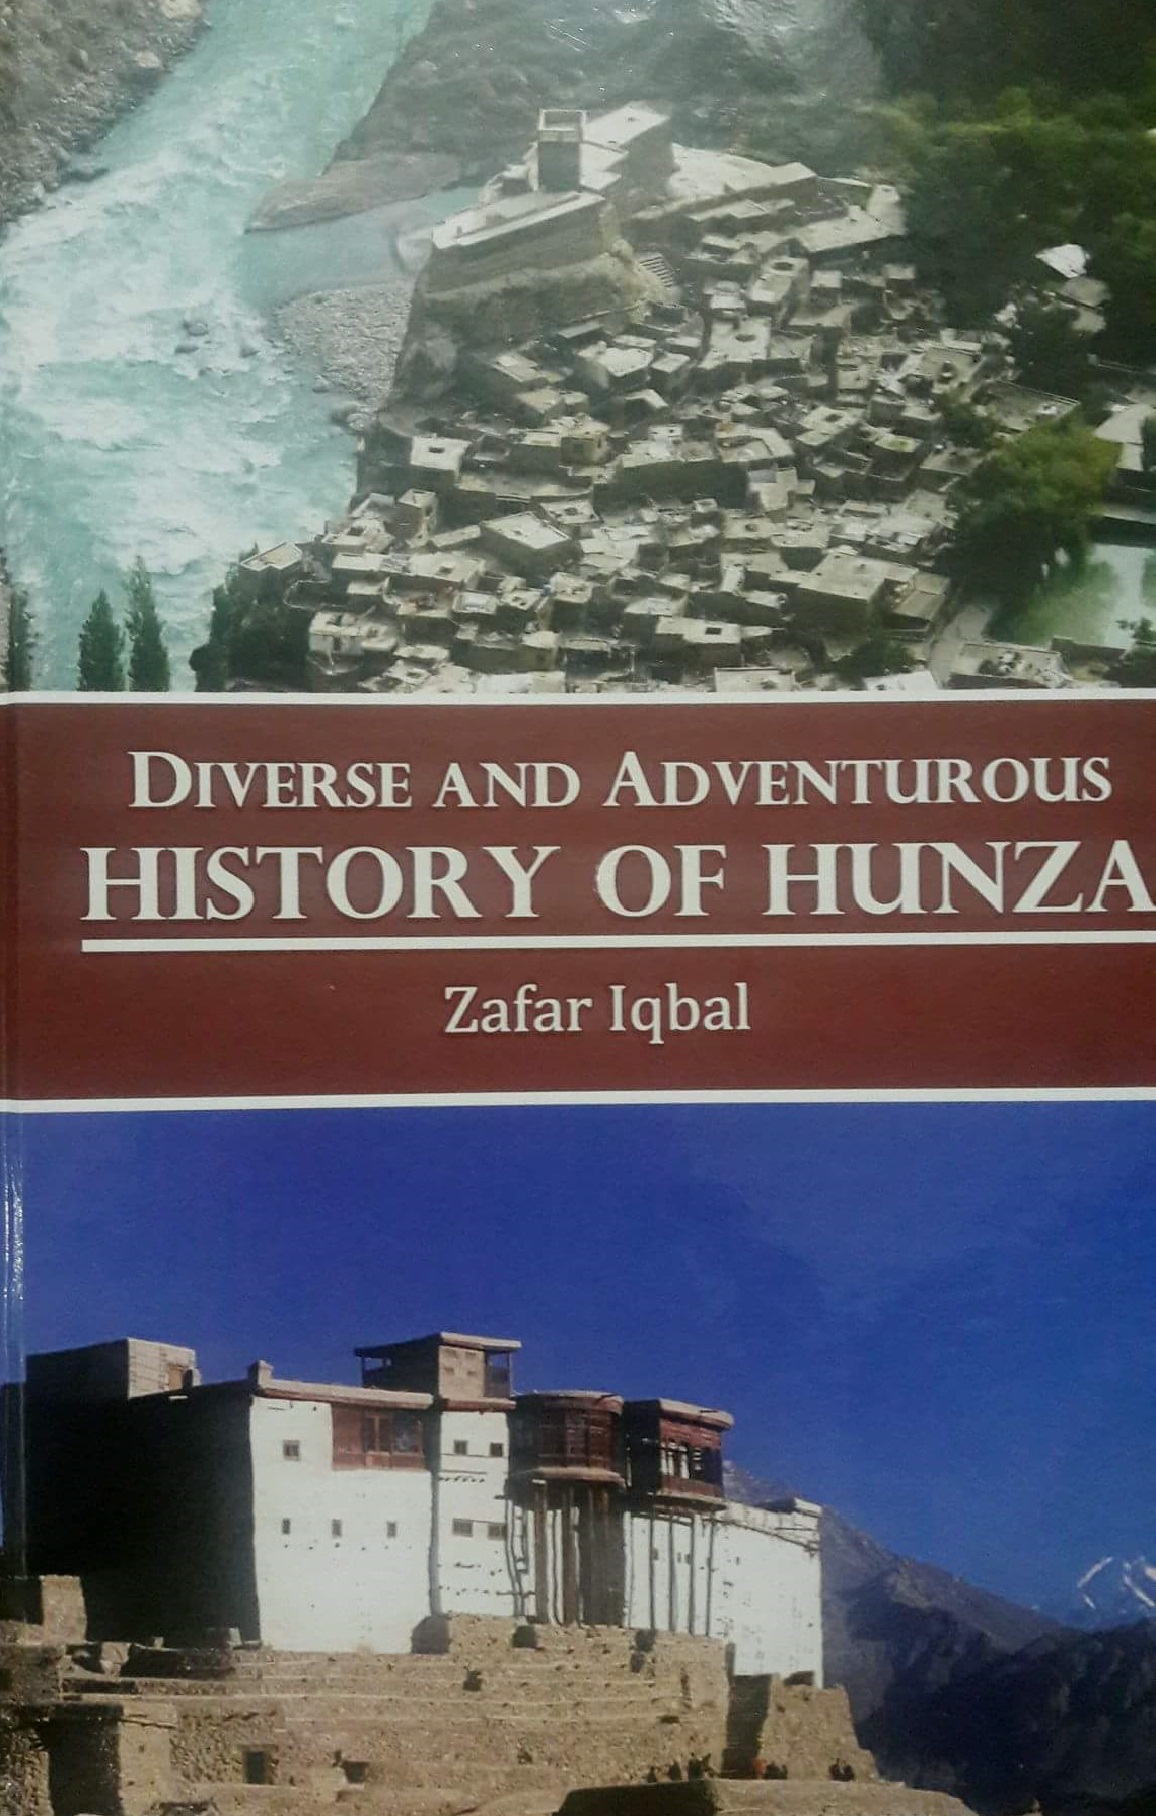 Diverse and adventurous history of hunza